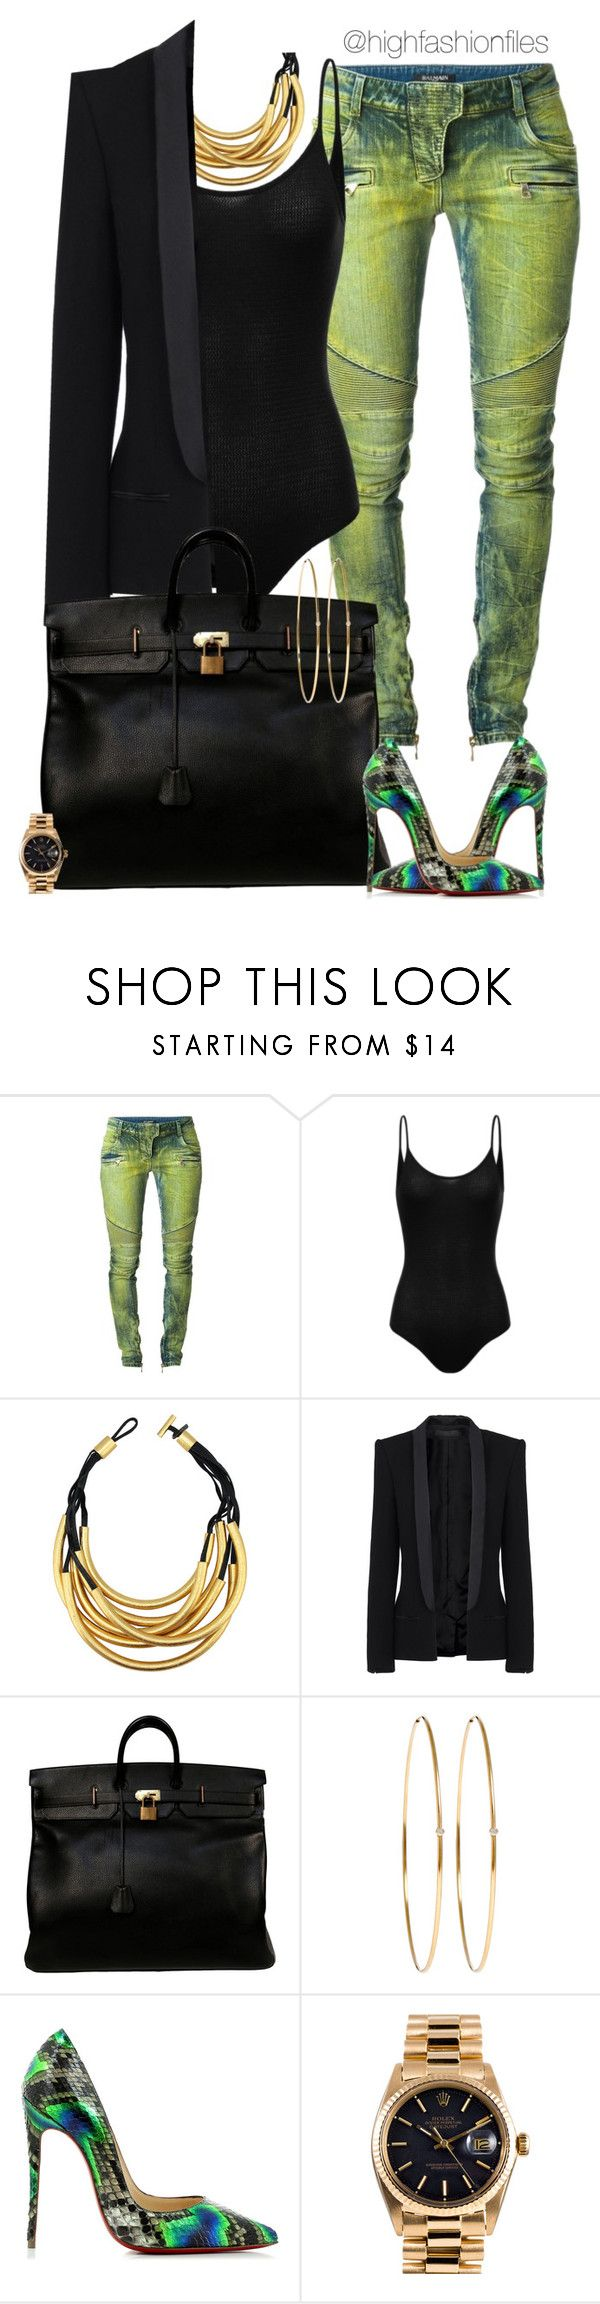 Neon Lights by highfashionfiles ❤ liked on Polyvore featuring Balmain, Monies, Haider Ackermann, Hermès, Jennifer Meyer Jewelry, Christian Louboutin and Rolex